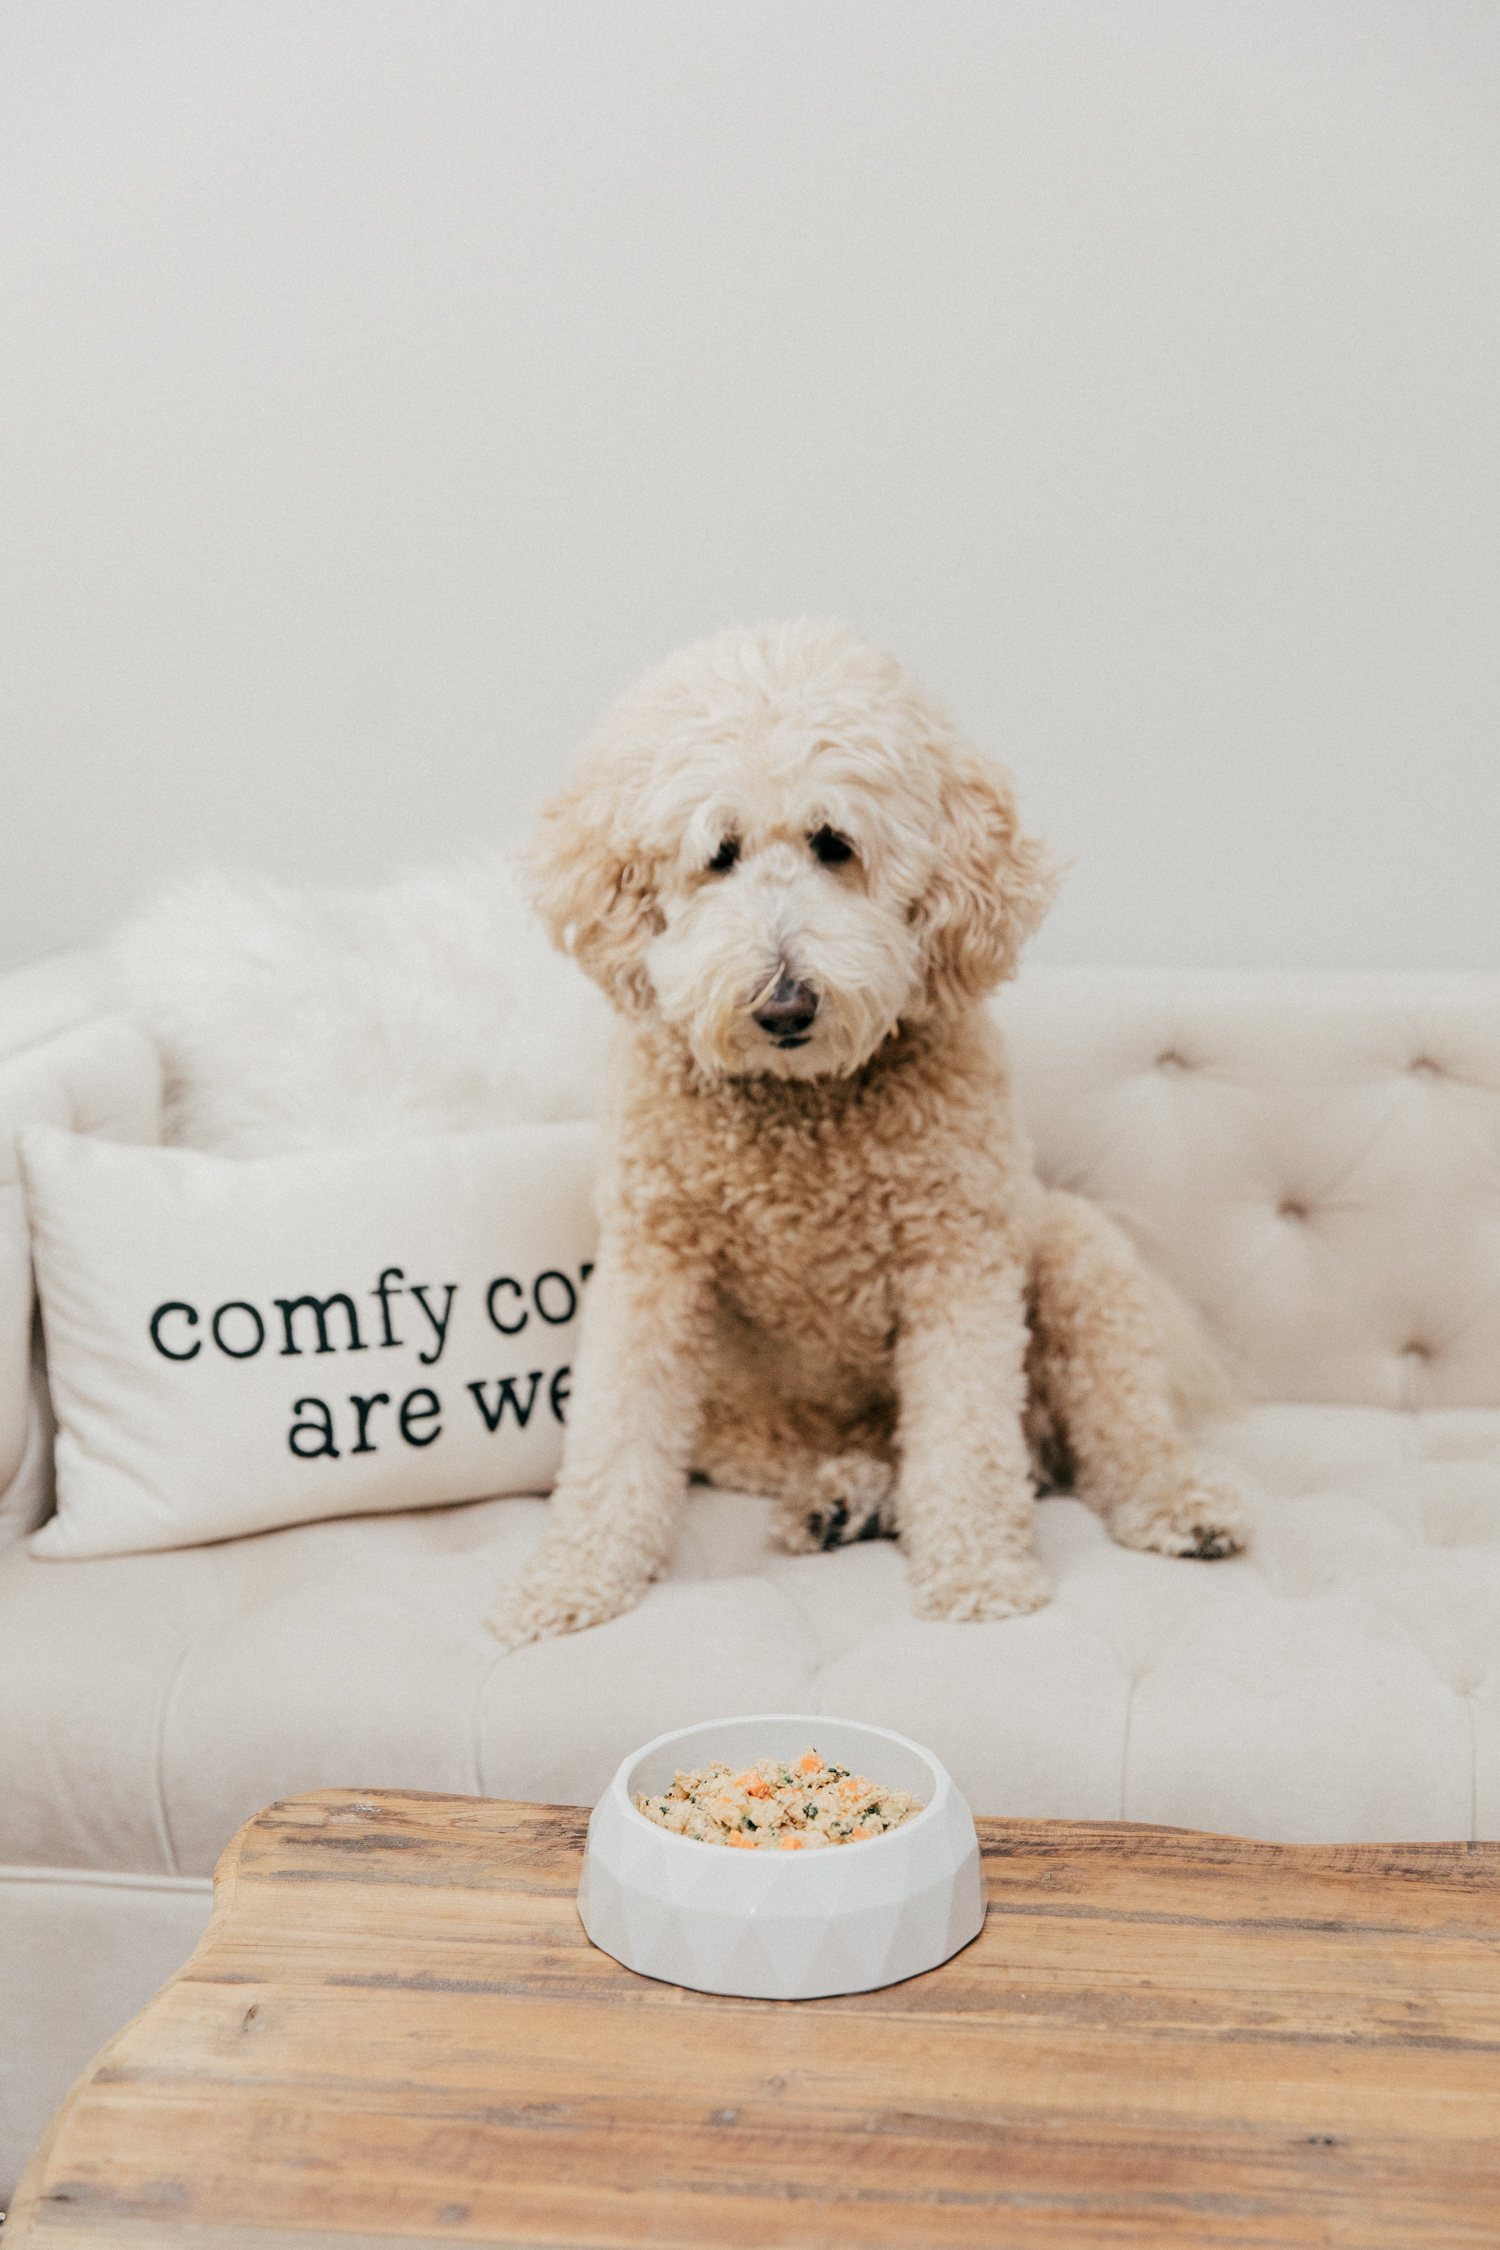 The Farmer's Dog x maddy - the food that has changed her life (+ a 50% off discount code at bottom of post ;)